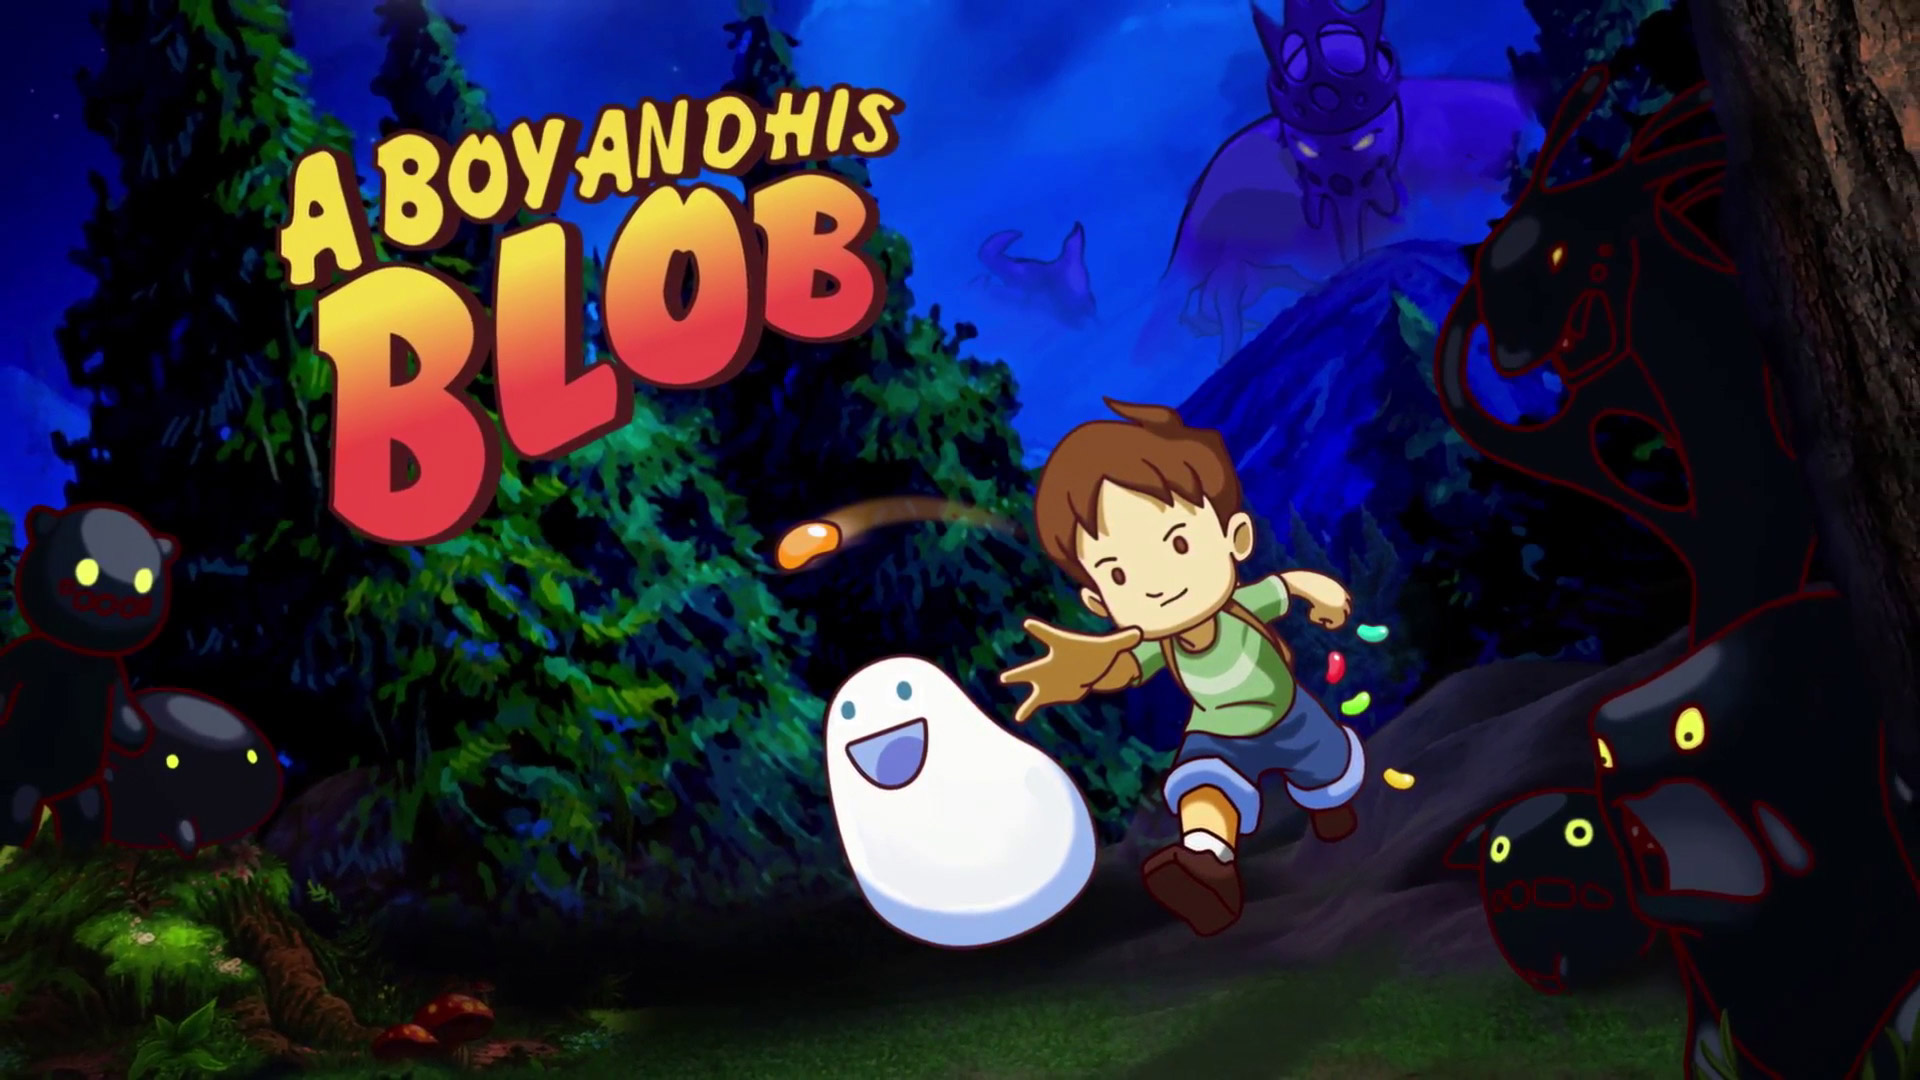 A Boy and His Blob Wallpaper in 1920x1080